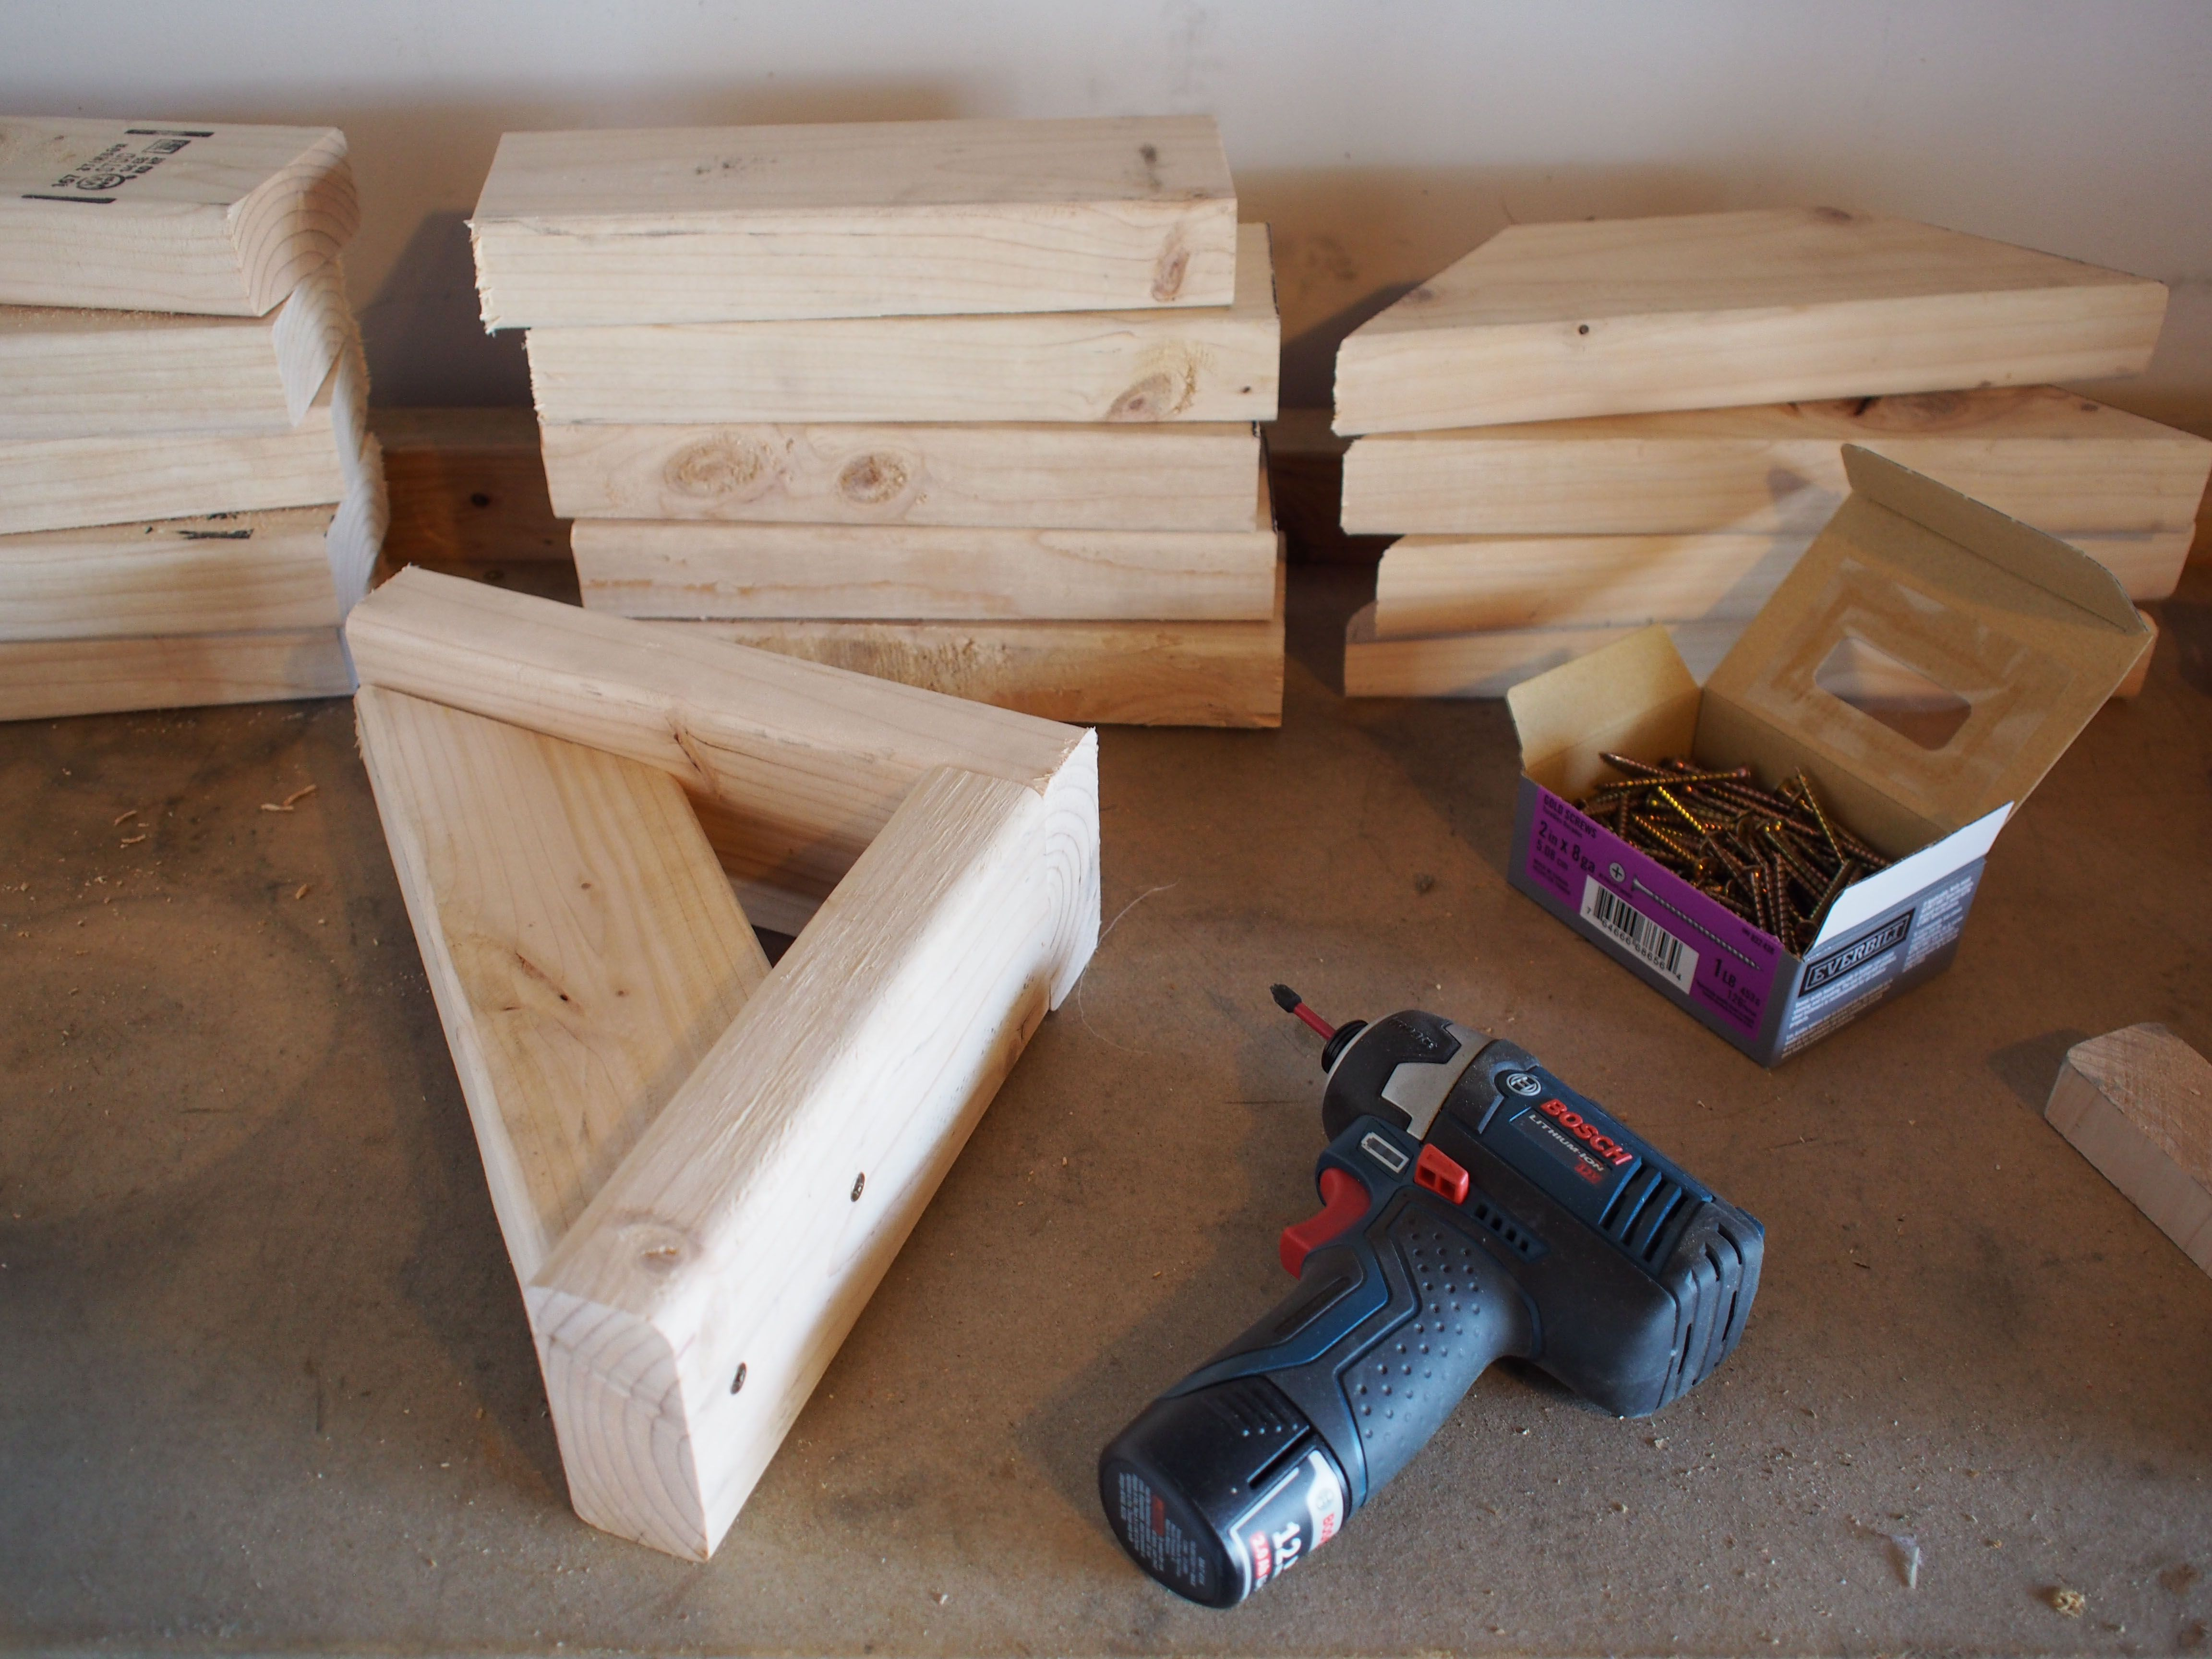 We Assembled All Six Brackets Using Standard 2 1/2 Inch Screws And Our  Impact Driver. We Put Two Screws Into Each Connected End. The Longer  10 Inch Piece Is ...